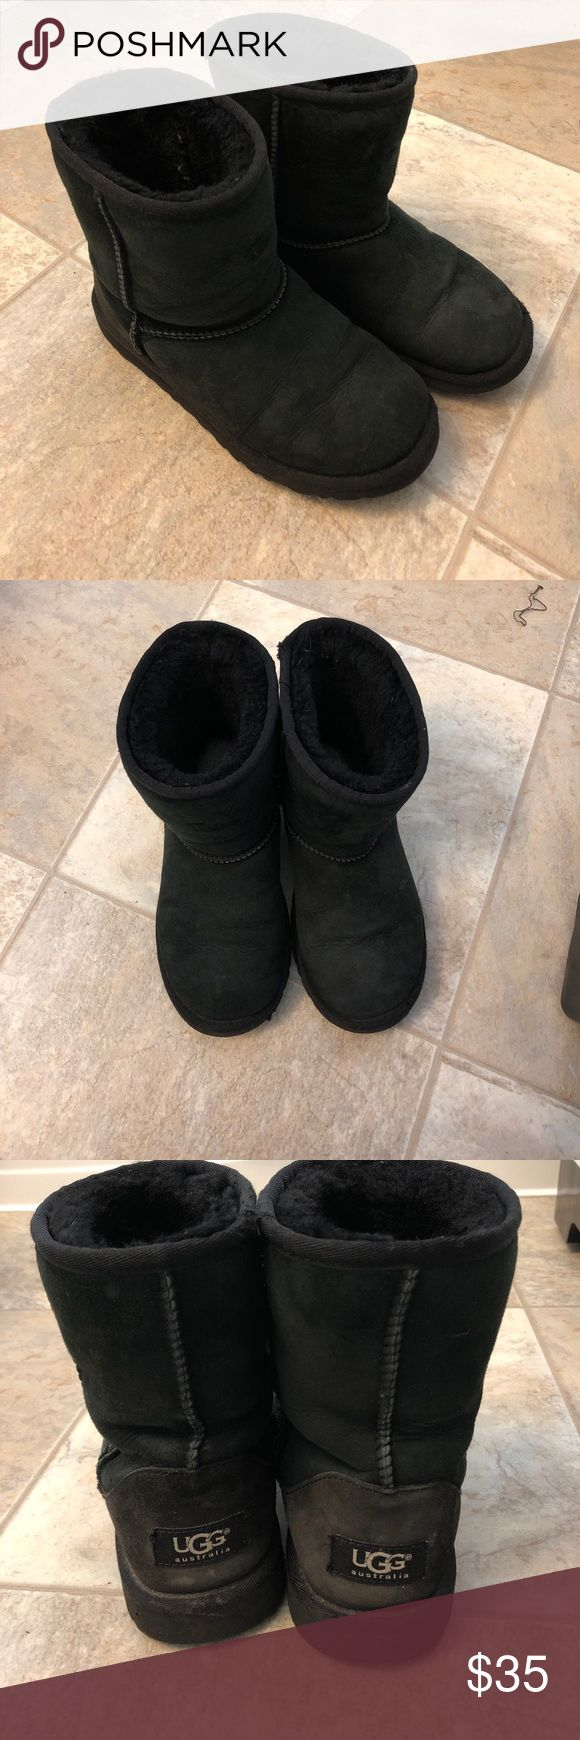 UGGS size 4 Uggs size 4 obviously worn & broken in. The fur inside has been broken into so they do fit a little bigger since its not as much fluff. Normal wear and tear UGG Shoes Boots